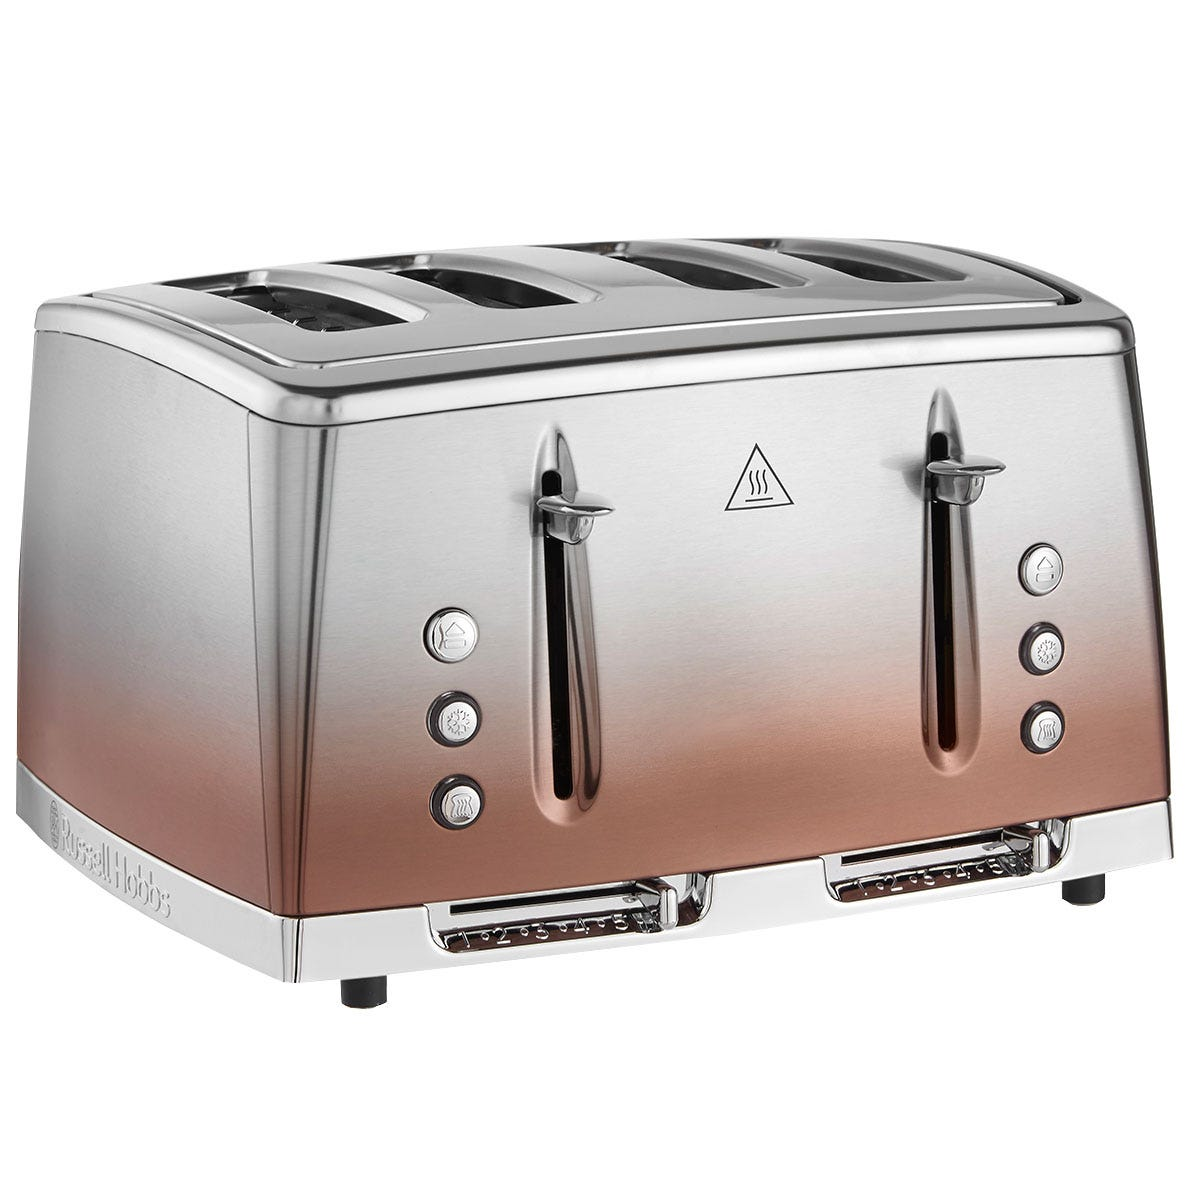 Russell Hobbs 25143 Eclipse 4-Slice Toaster - Copper Sunset